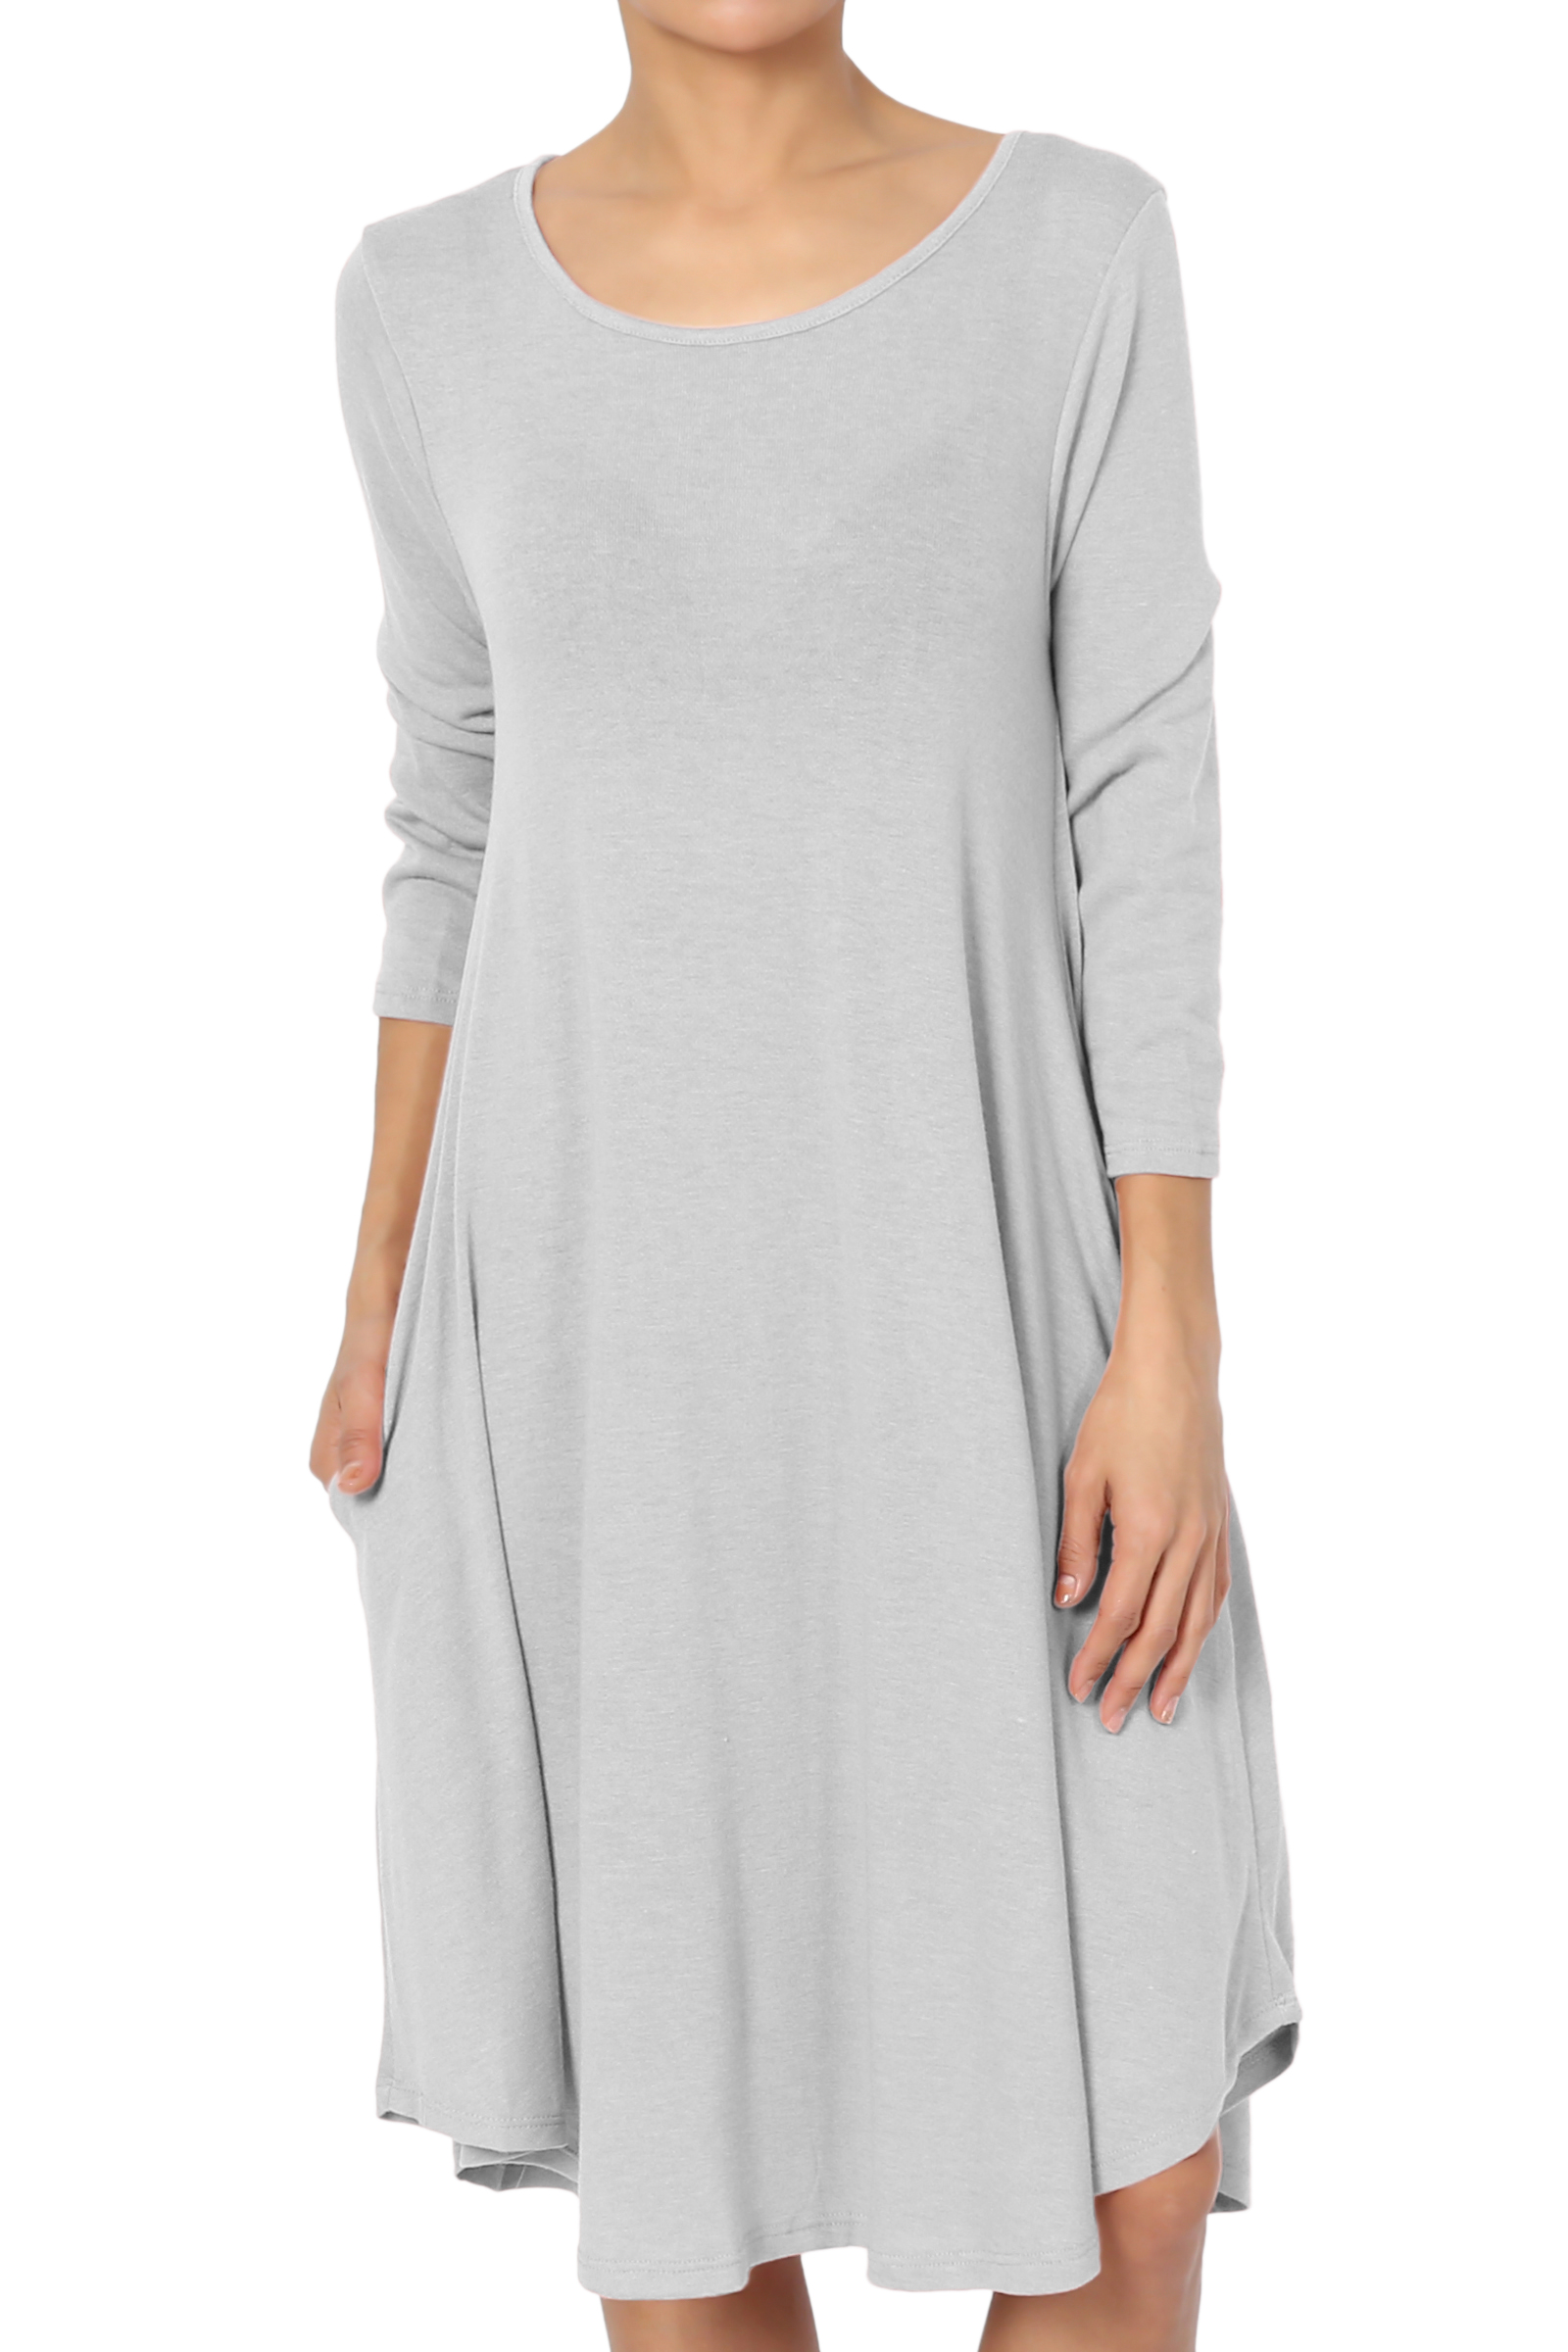 TheMogan Women's & Plus 3/4 Sleeve Soft Hacci Knit Fit and Flare Dress W Pocket